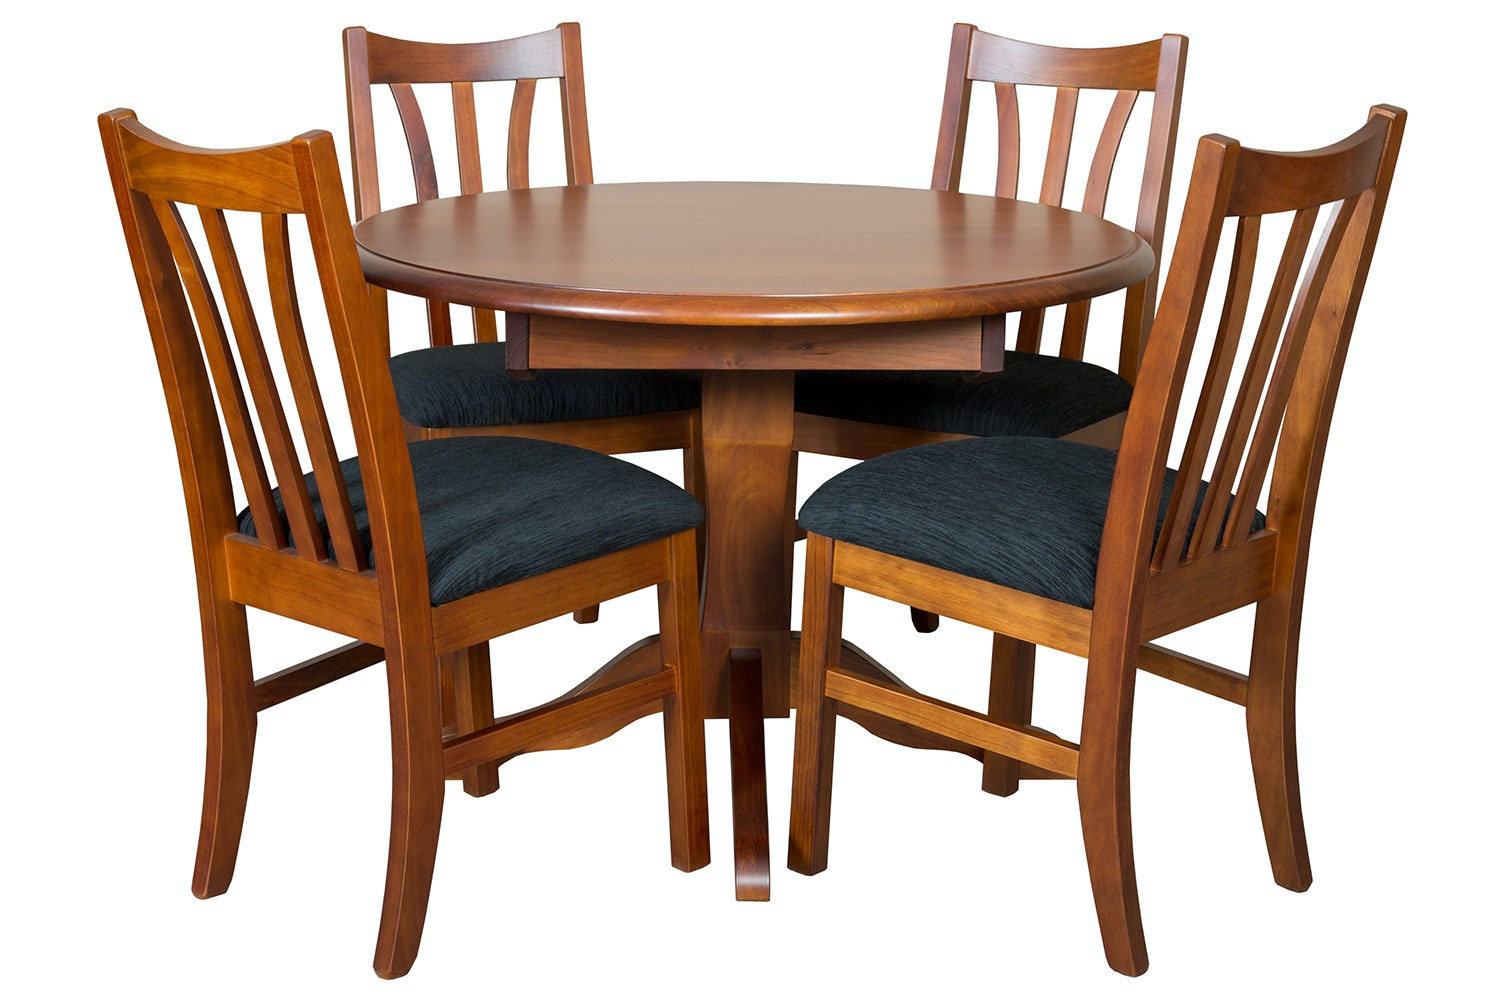 Waihi Round Dining Table by Coastwood Furniture